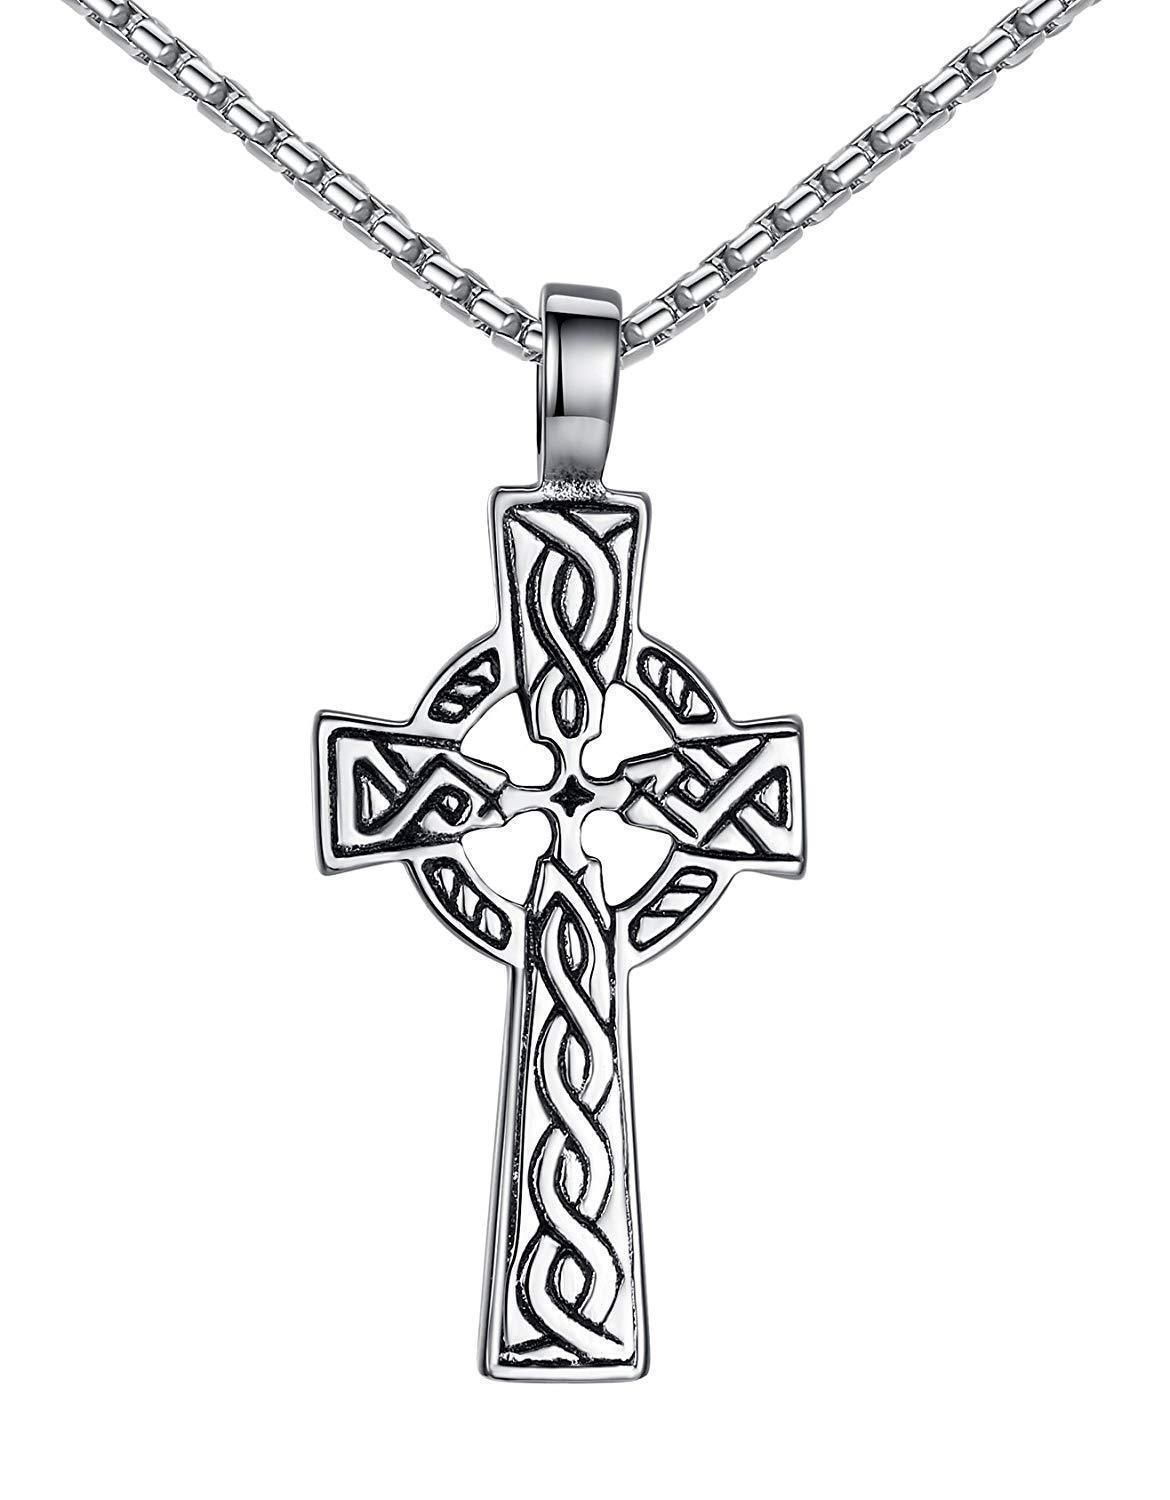 "Aoiy Stainless Steel Celtic Cross Irish Knot Pendant Necklace, Unisex, 21"" Link Chain, aap152"